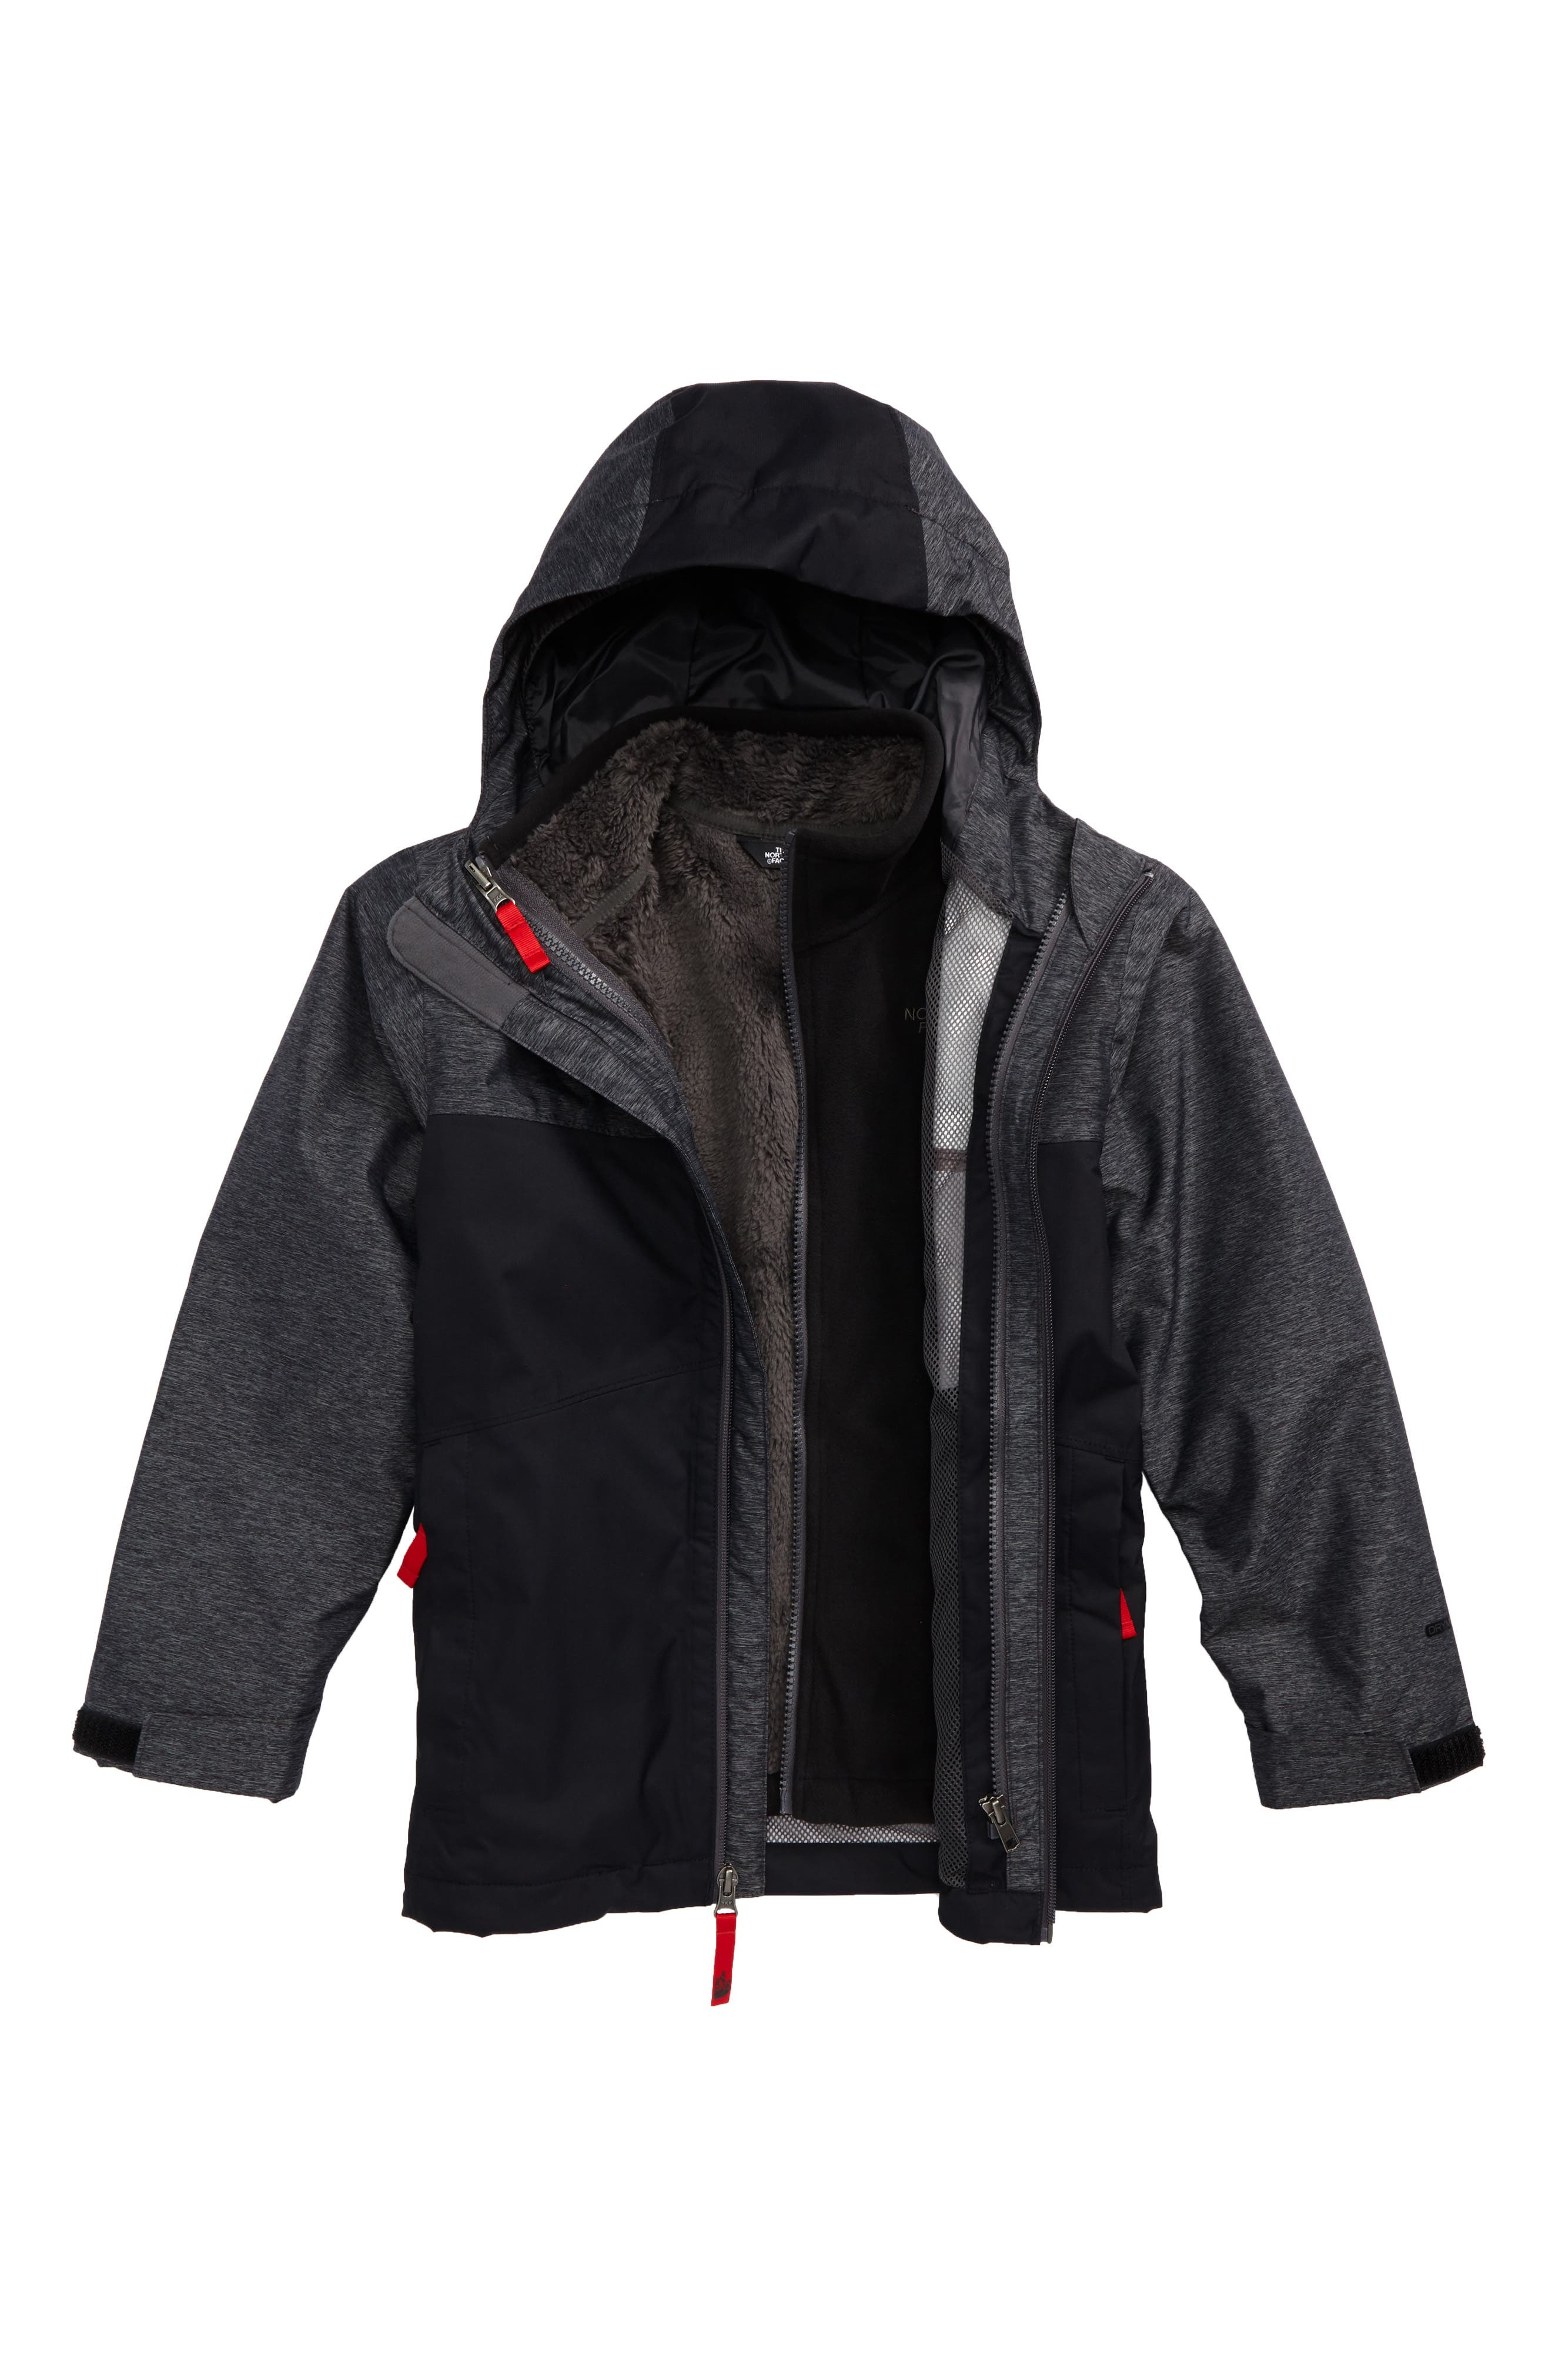 Chimborazo Triclimate<sup>®</sup> 3-in-1 Jacket,                         Main,                         color,